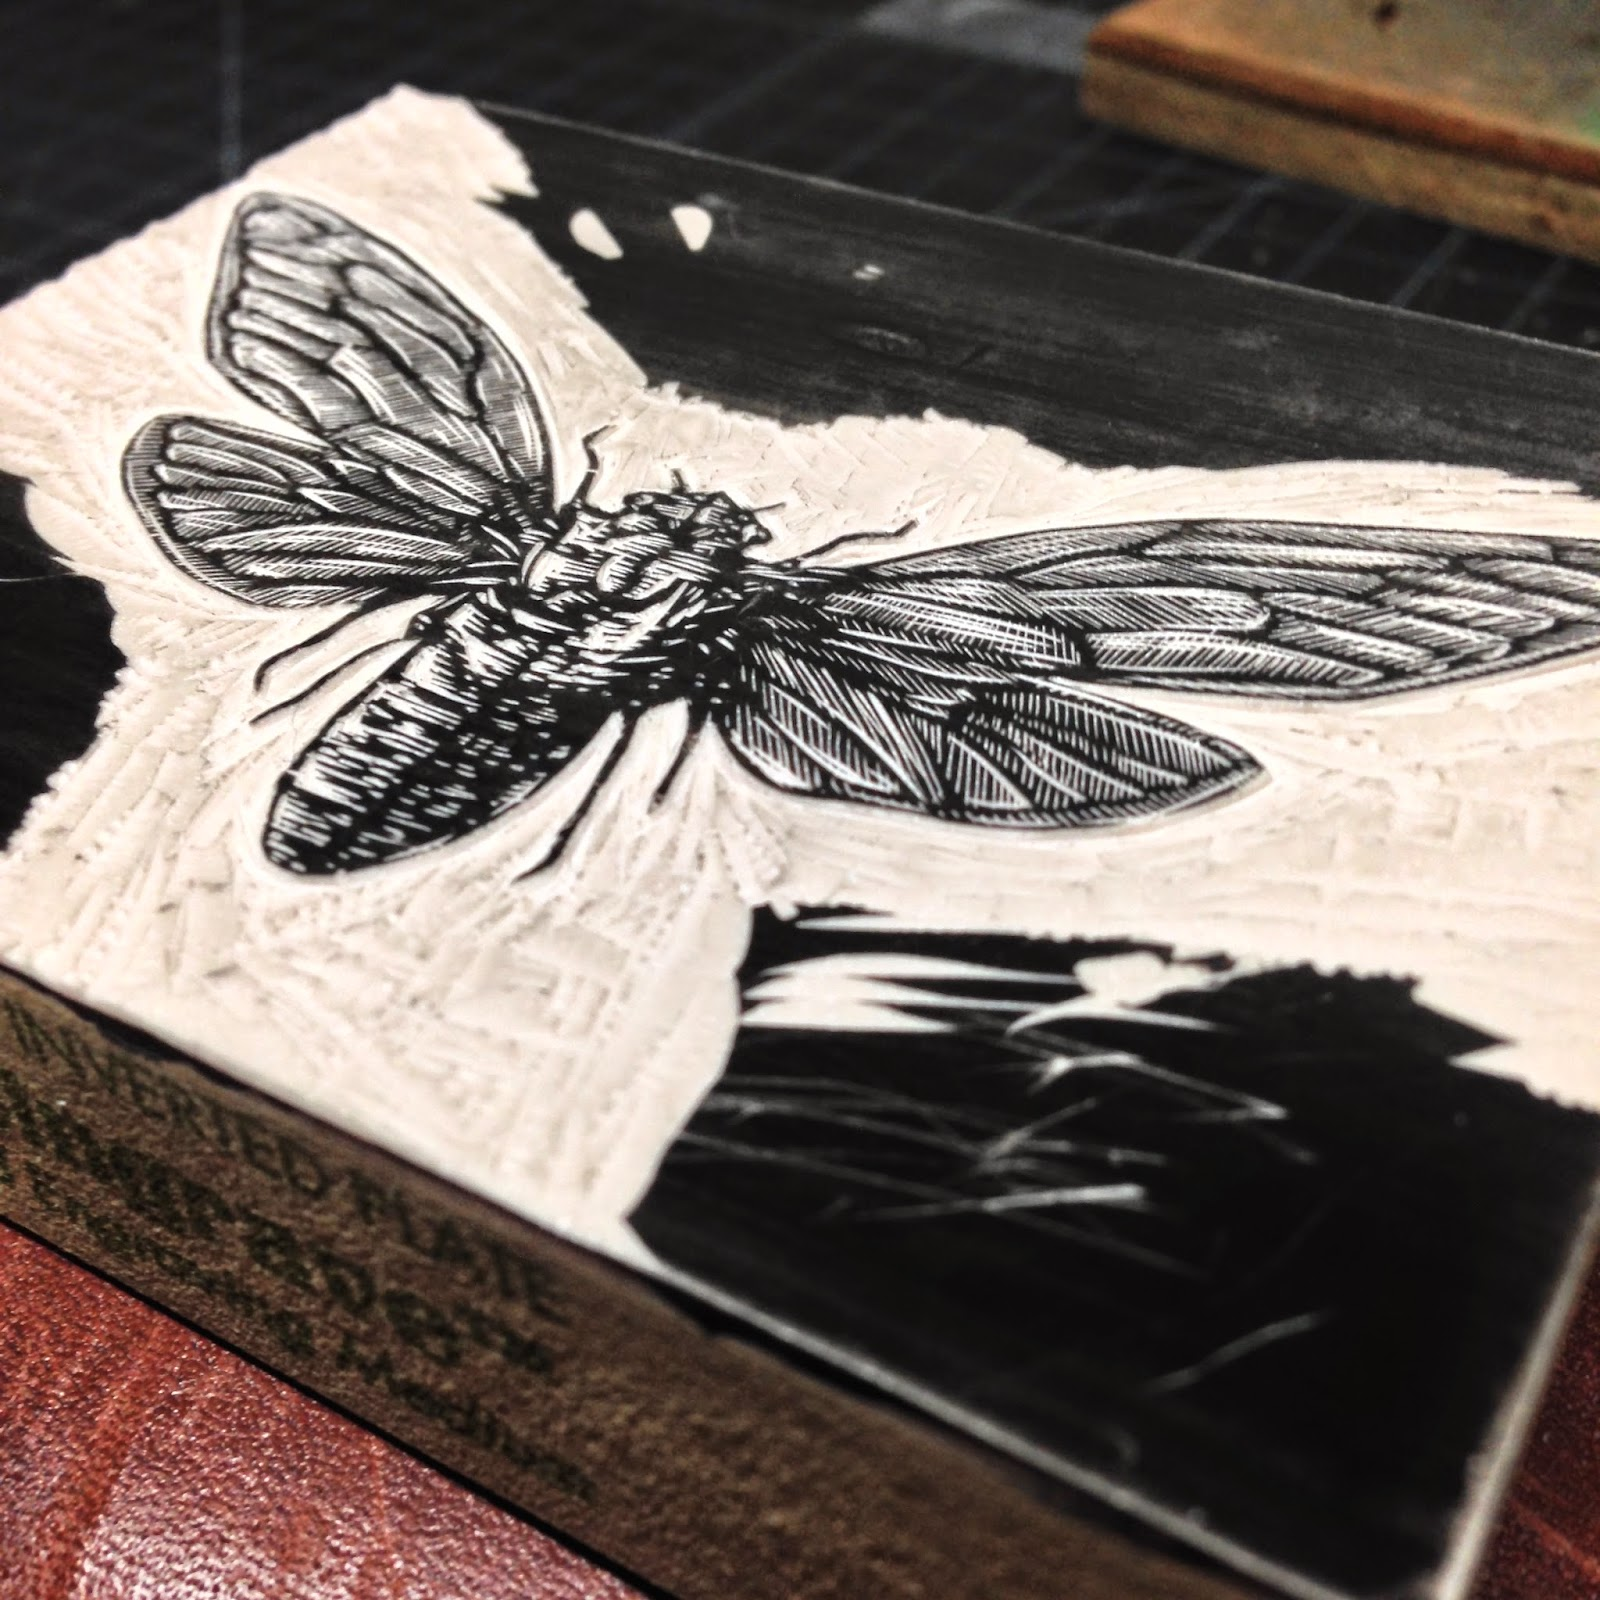 The actual Cicada is finished. The final step was to clear out all of the remaining area around the insect, allowing for just the cicada to print on the paper.